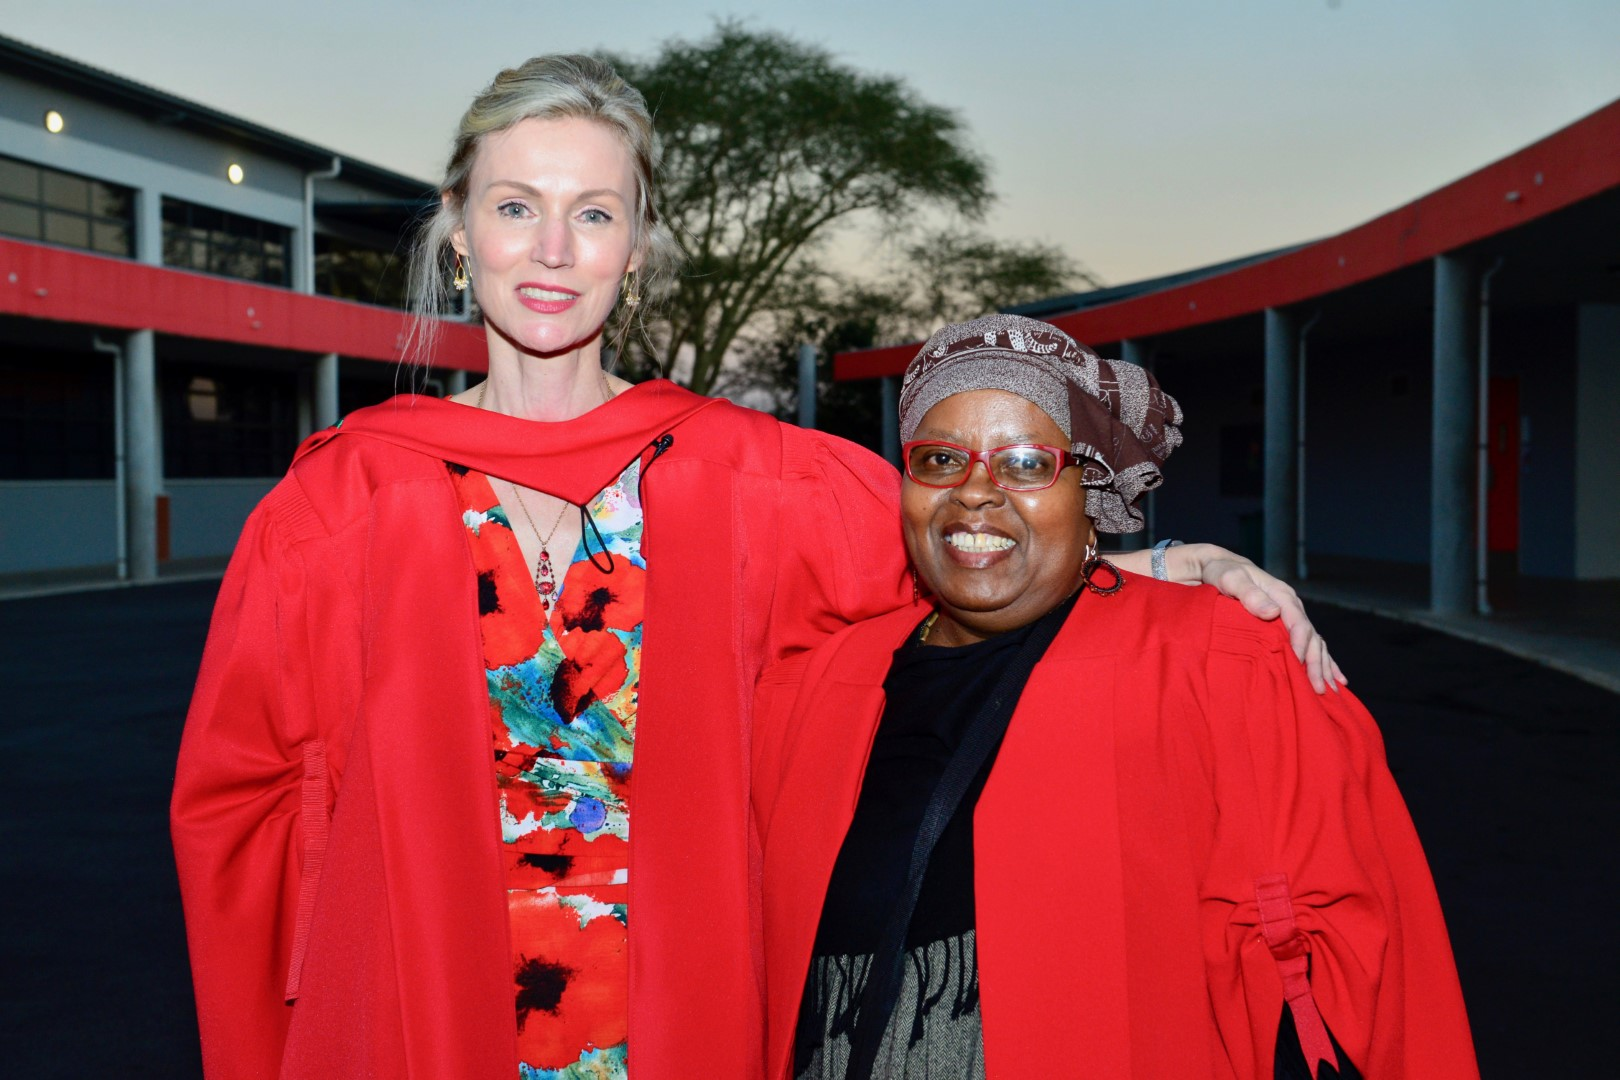 Prof Pithouse Morgan with her doctoral supervisor Prof Relebohile Moletsane